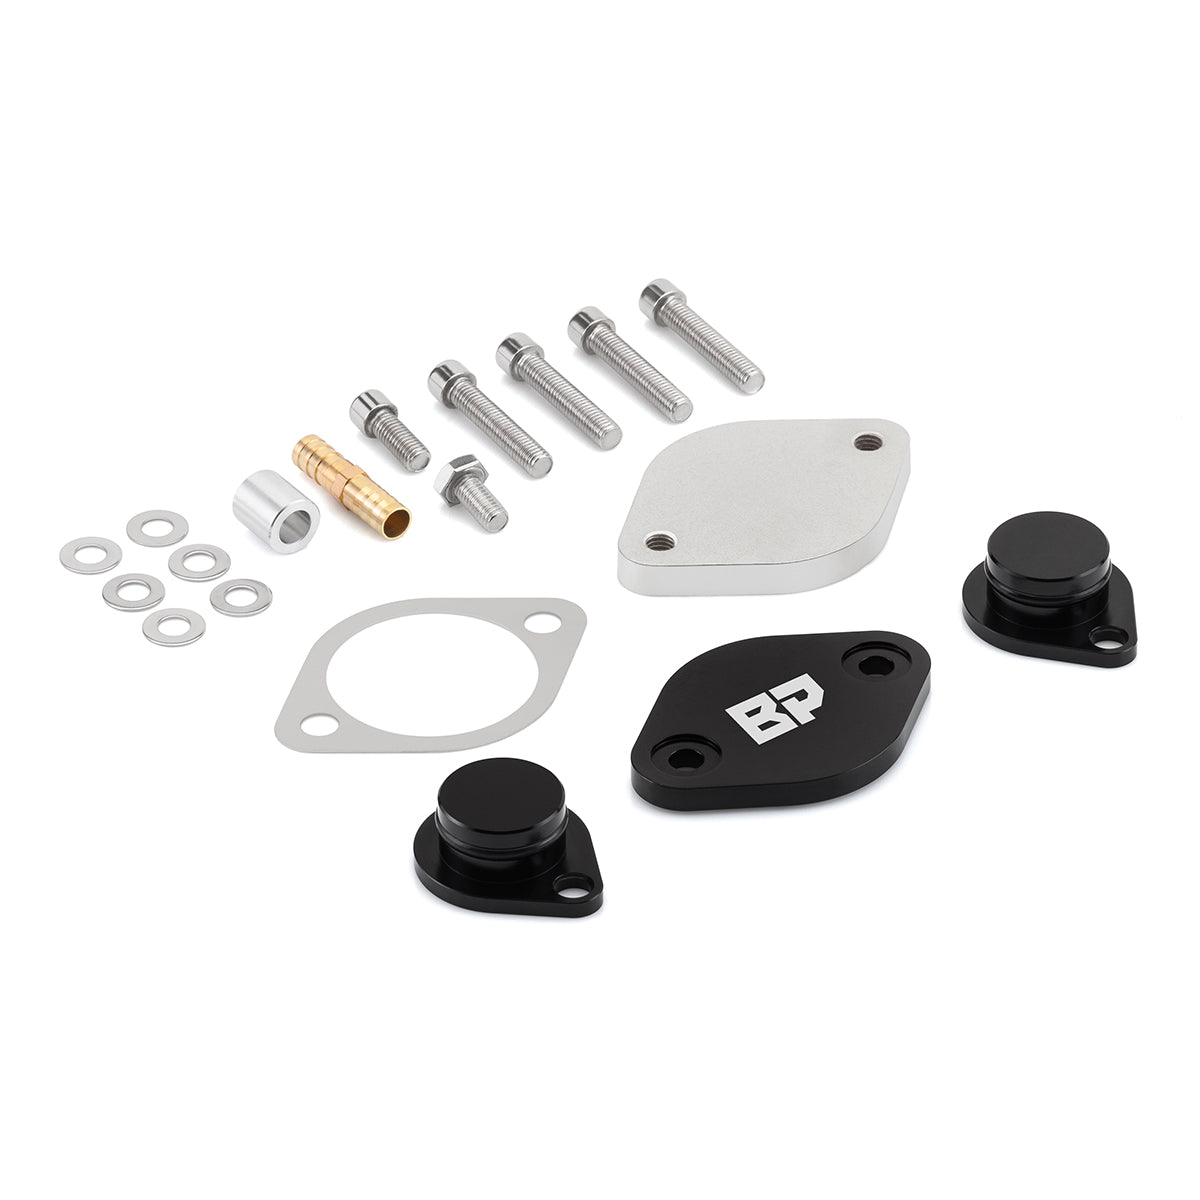 2008-2010 Ford F250 Super Duty Powerstroke Diesel EGR Block Off Plate & Cooler Delete Kit-EGR Block Off Plates + Cooler Delete-Blackpathinc